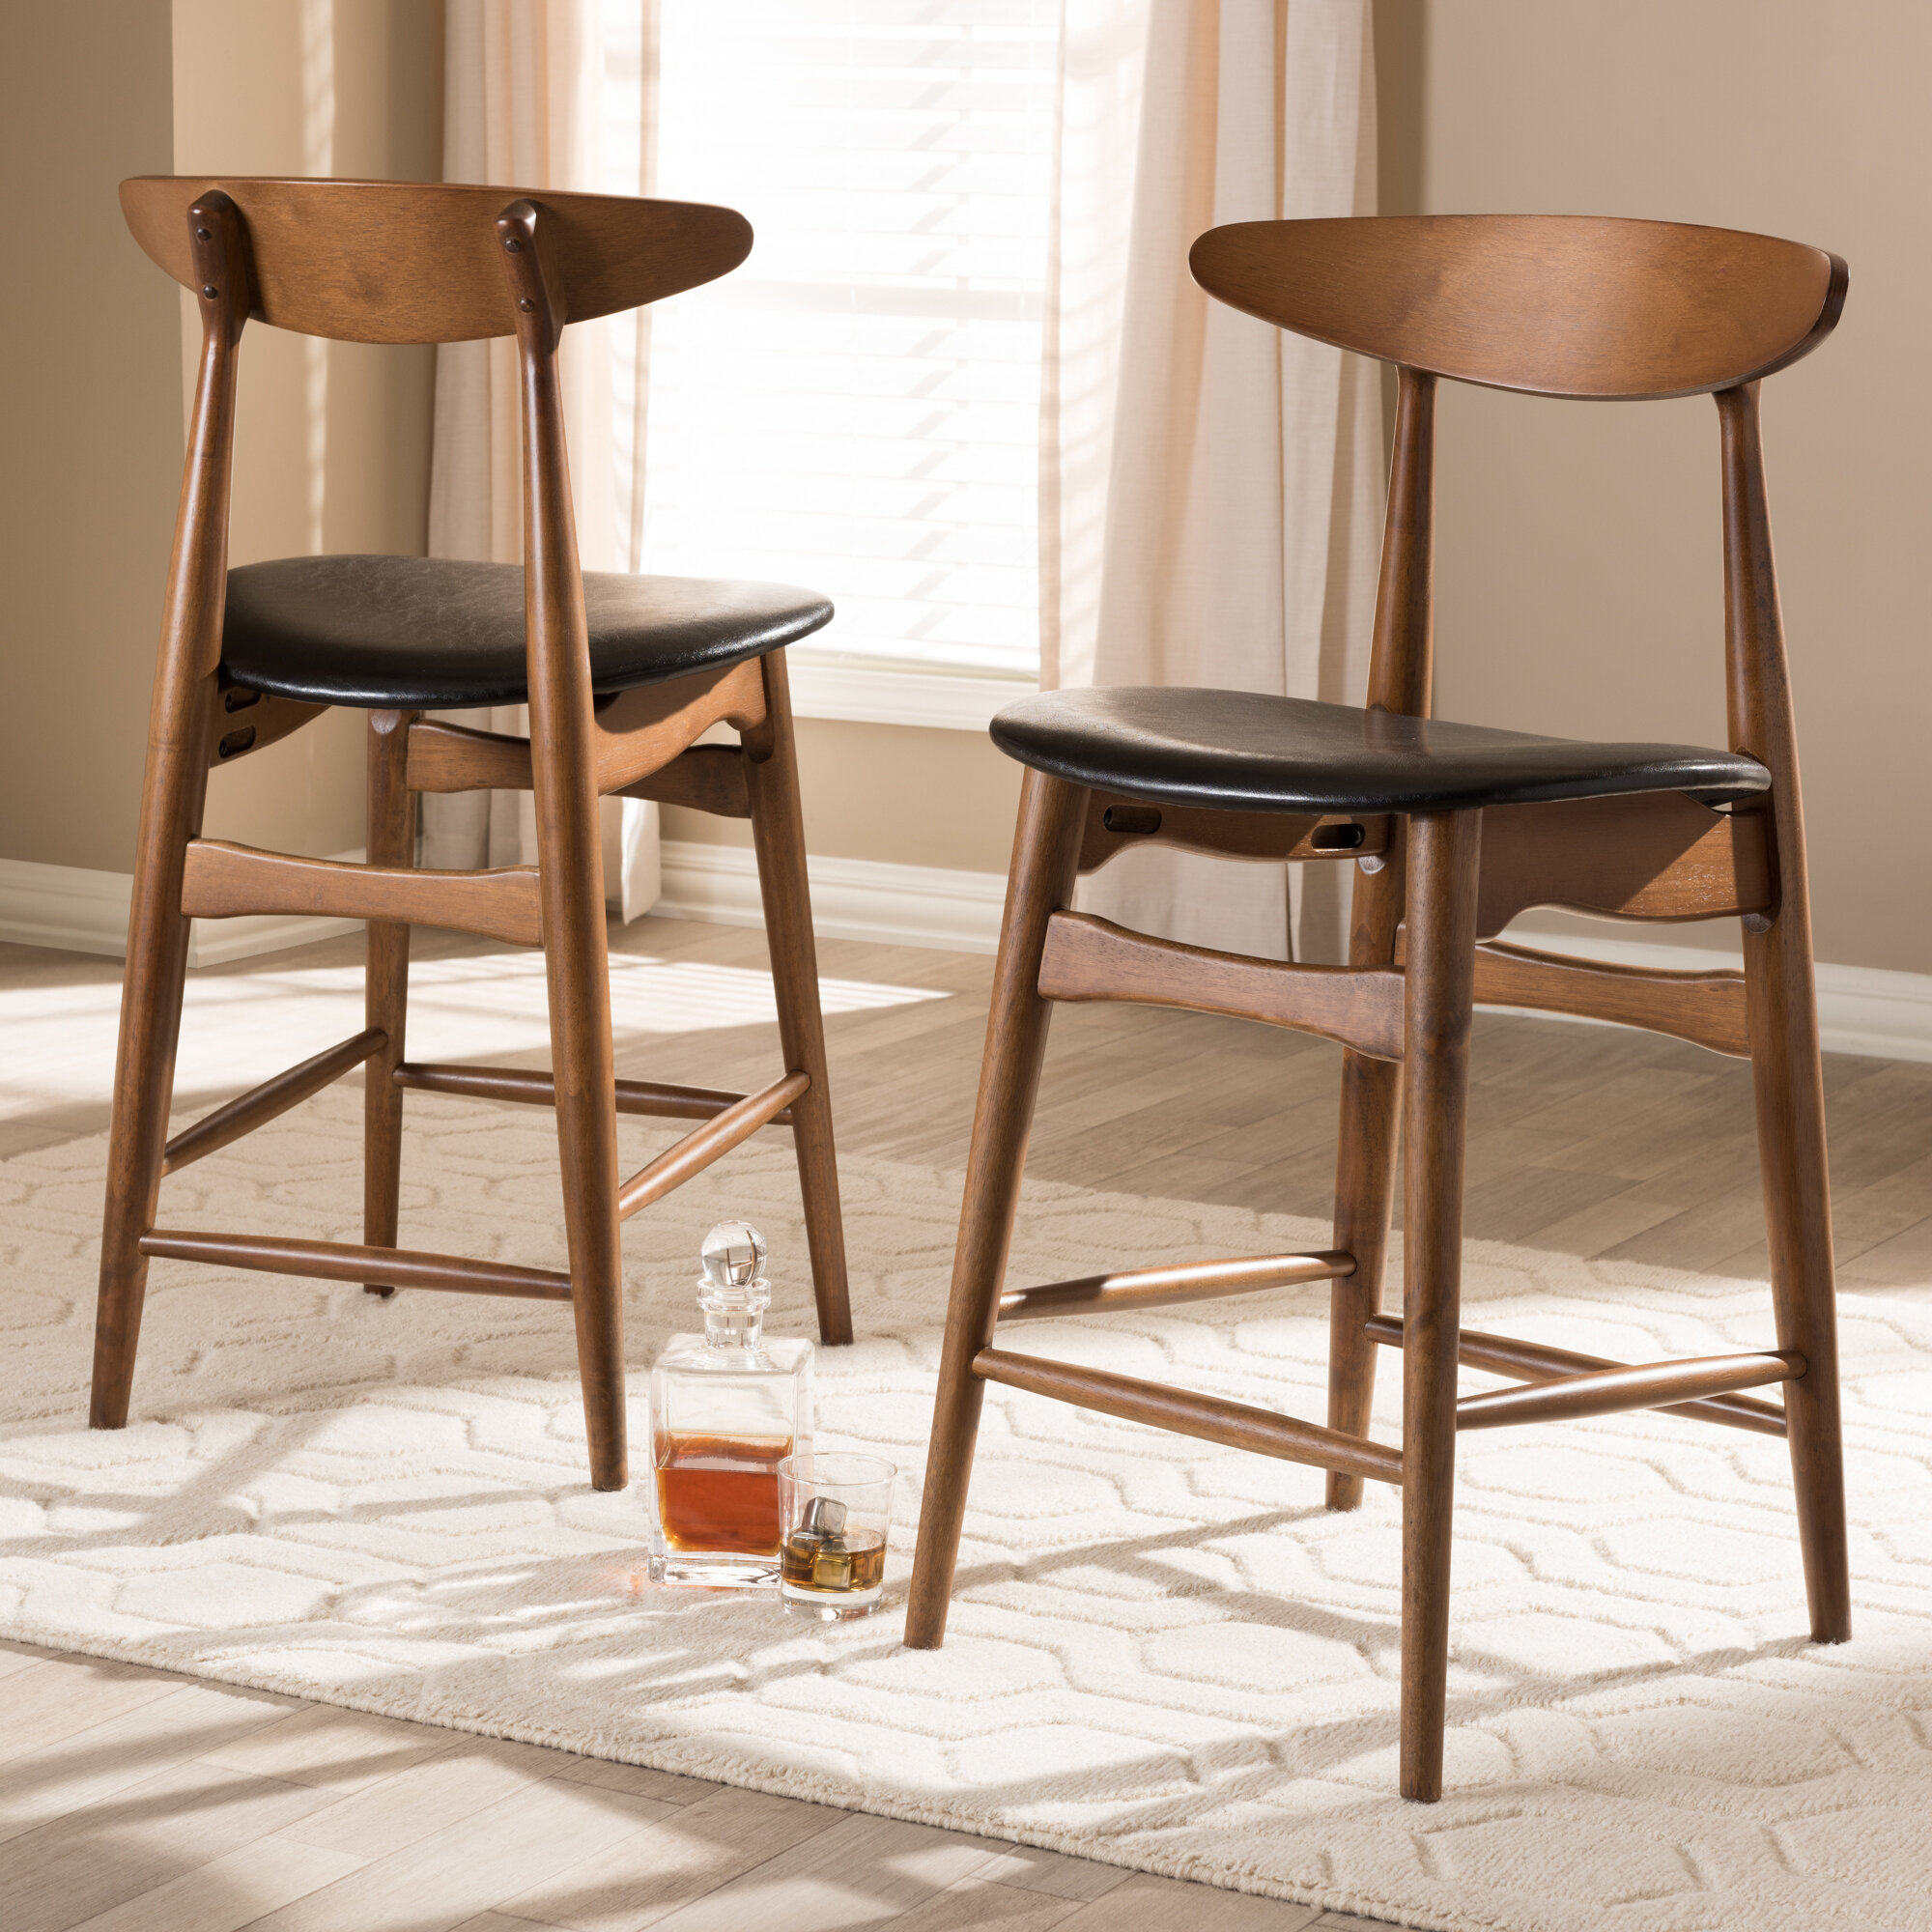 Miraculous Dinh Bar Counter Stool Gmtry Best Dining Table And Chair Ideas Images Gmtryco